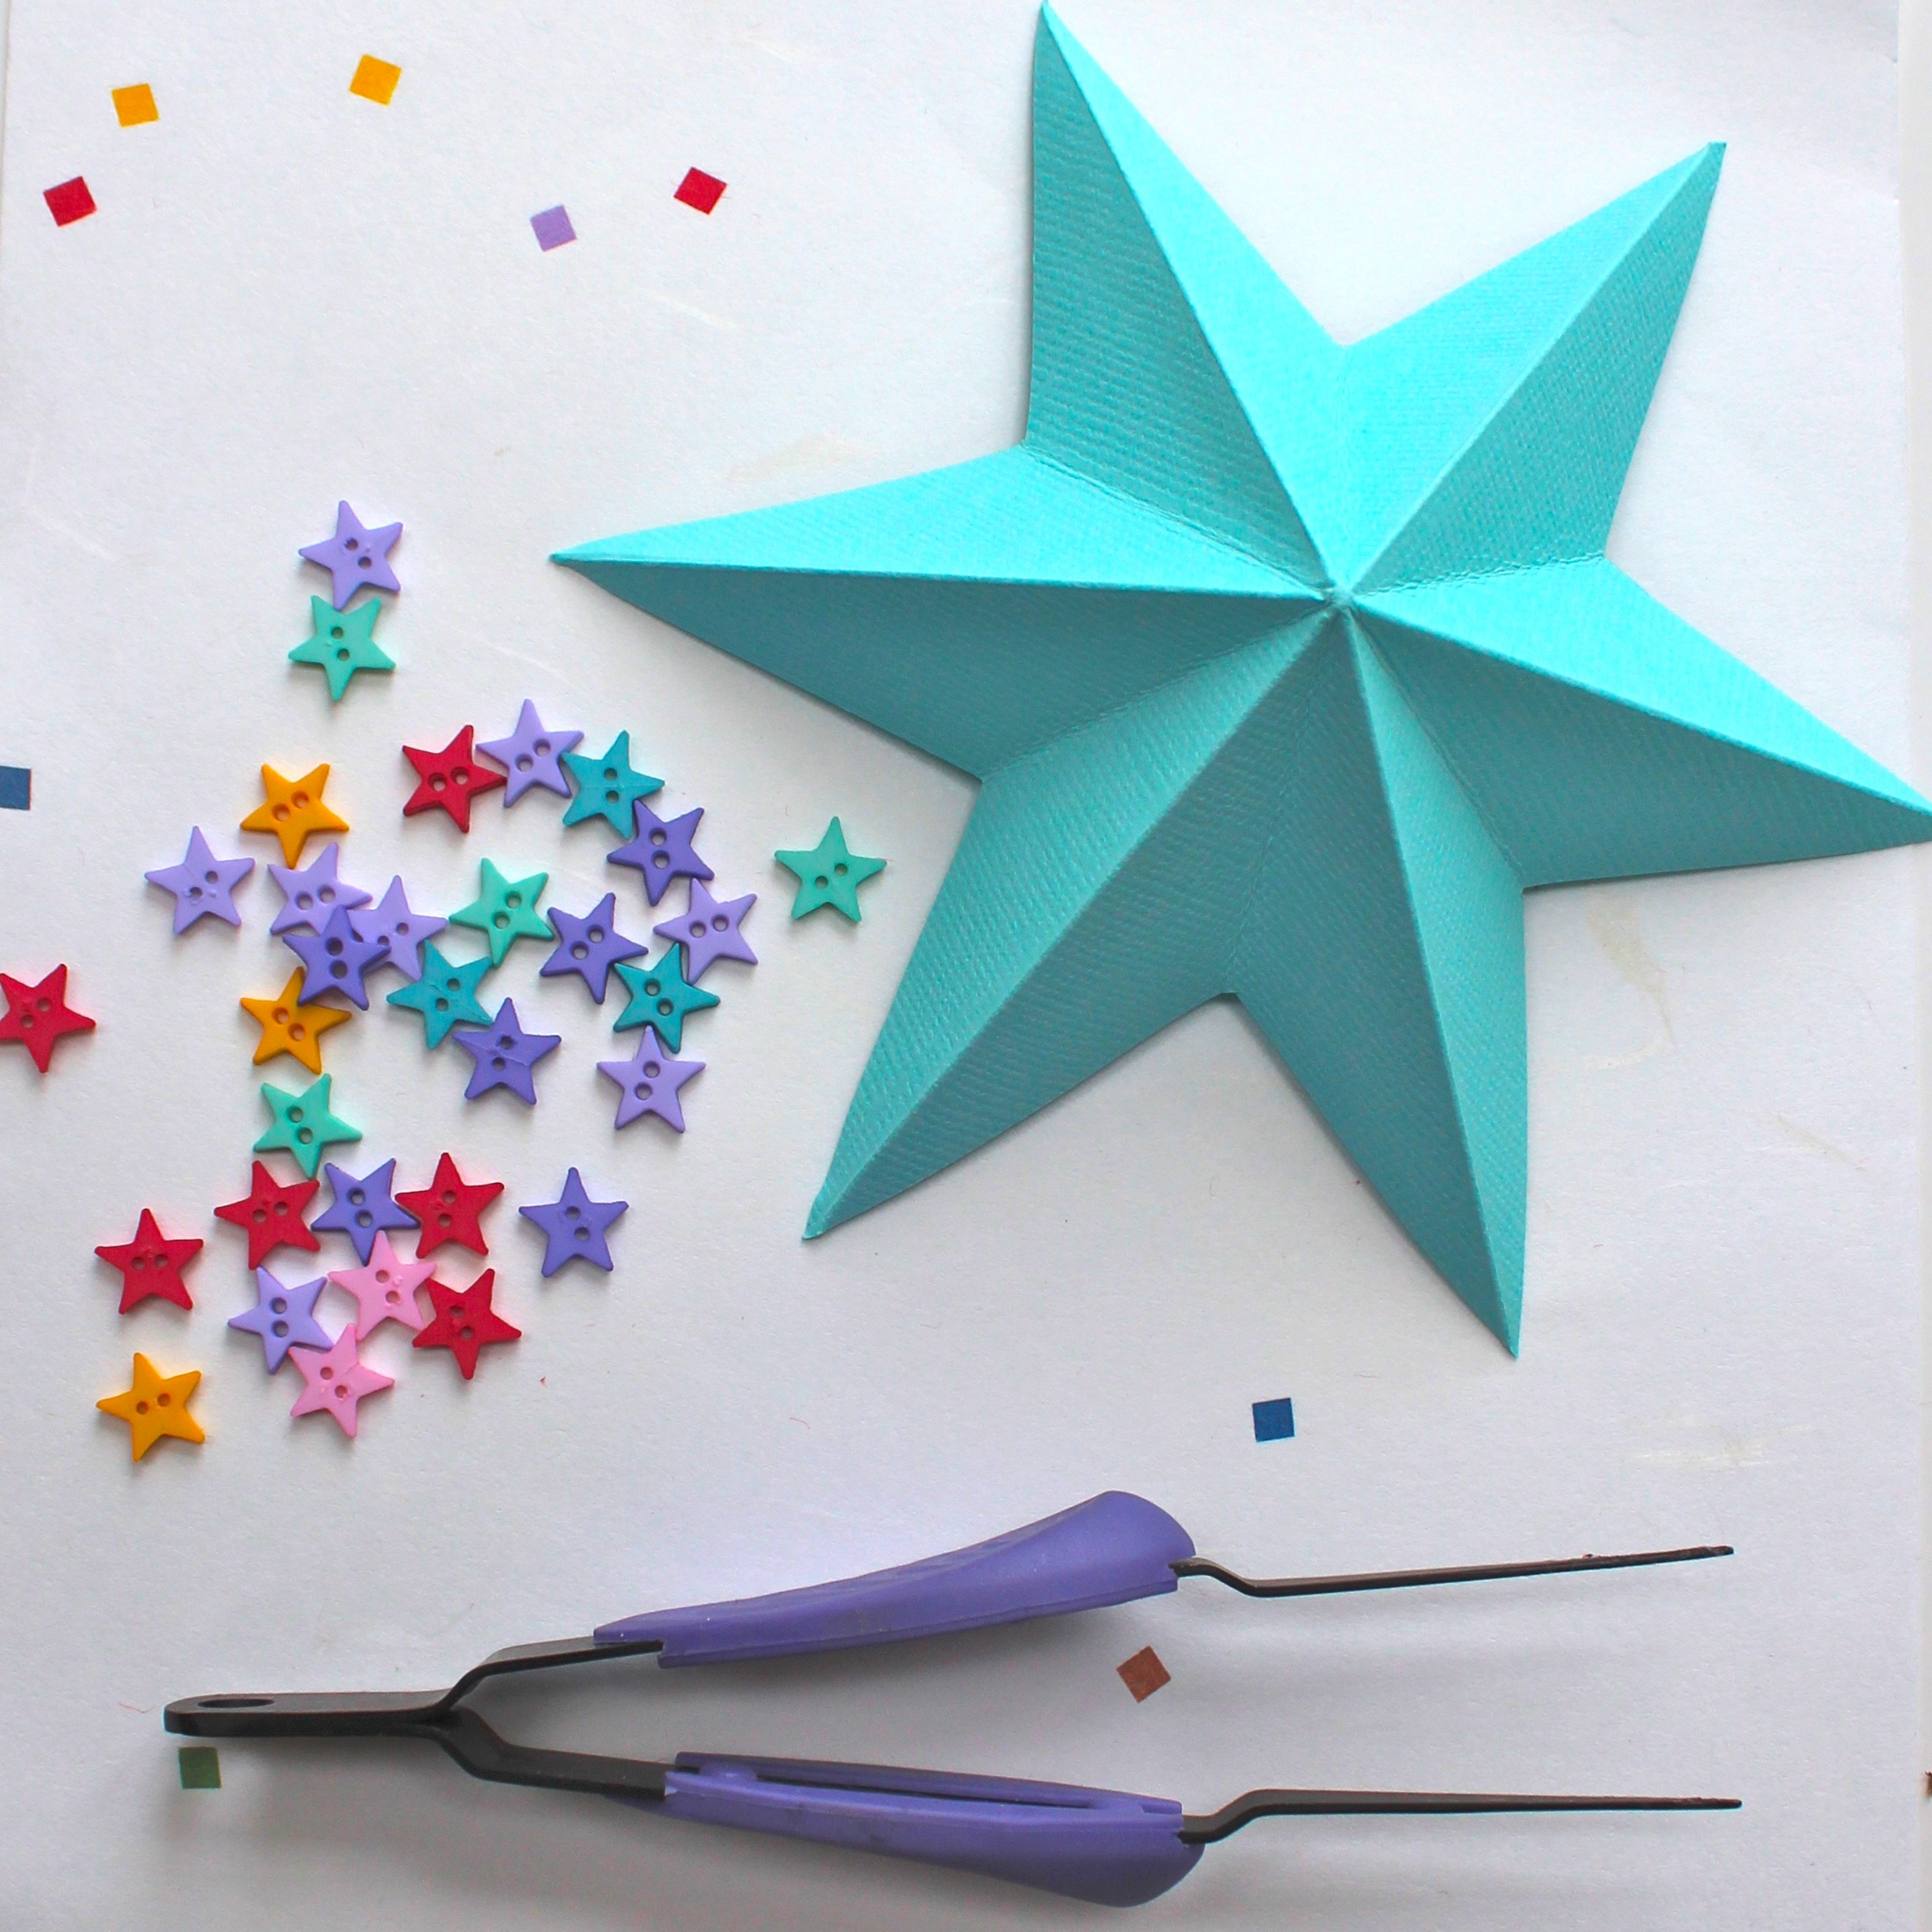 Starstruck for Diy 3d art